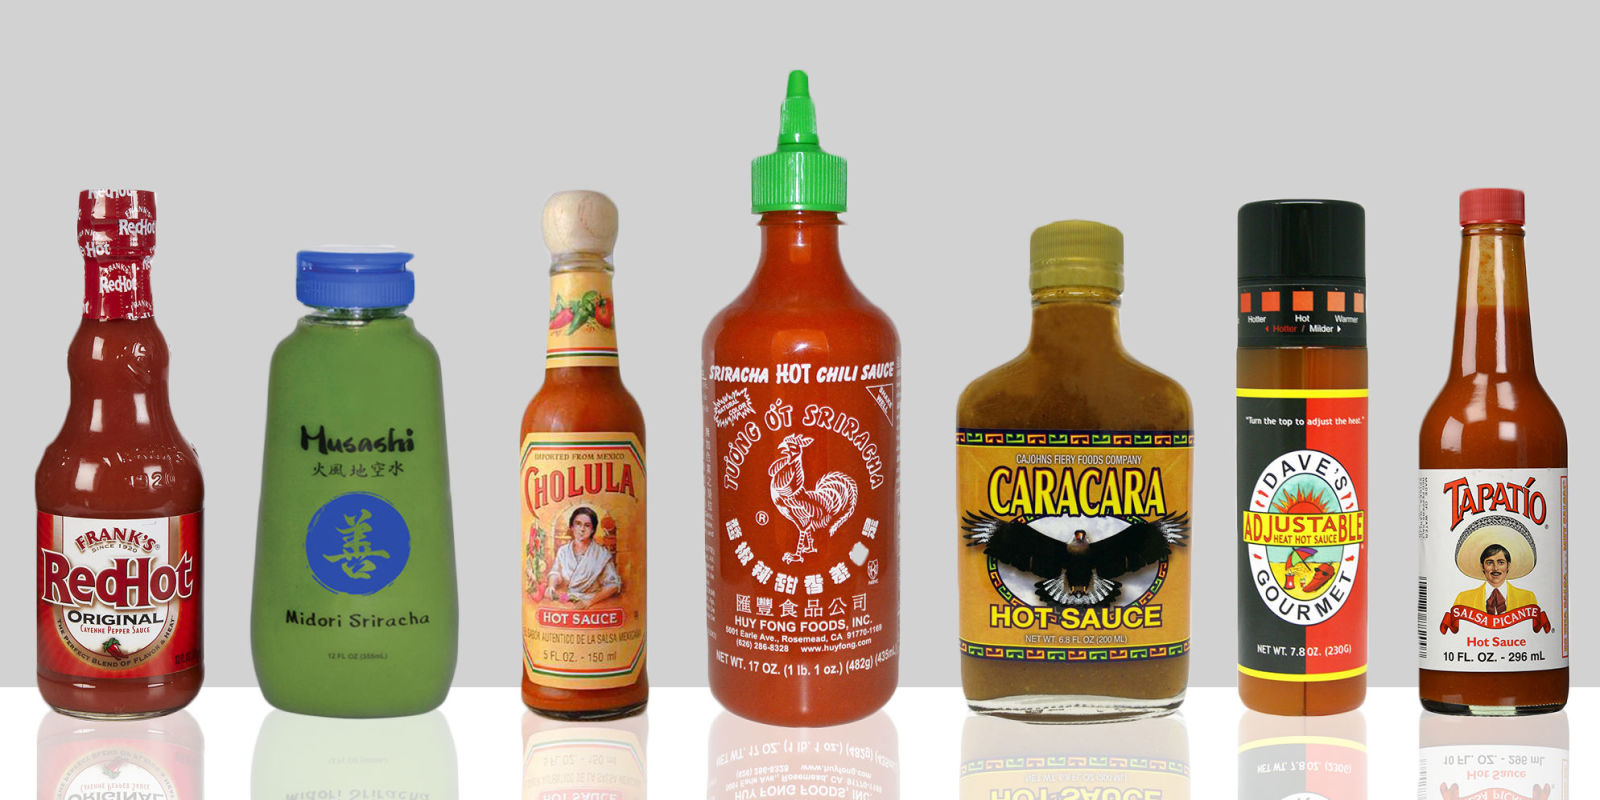 Ideas To Spice Up The Bedroom 13 Best Hot Sauce Brands Original And Extra Spicy Hot